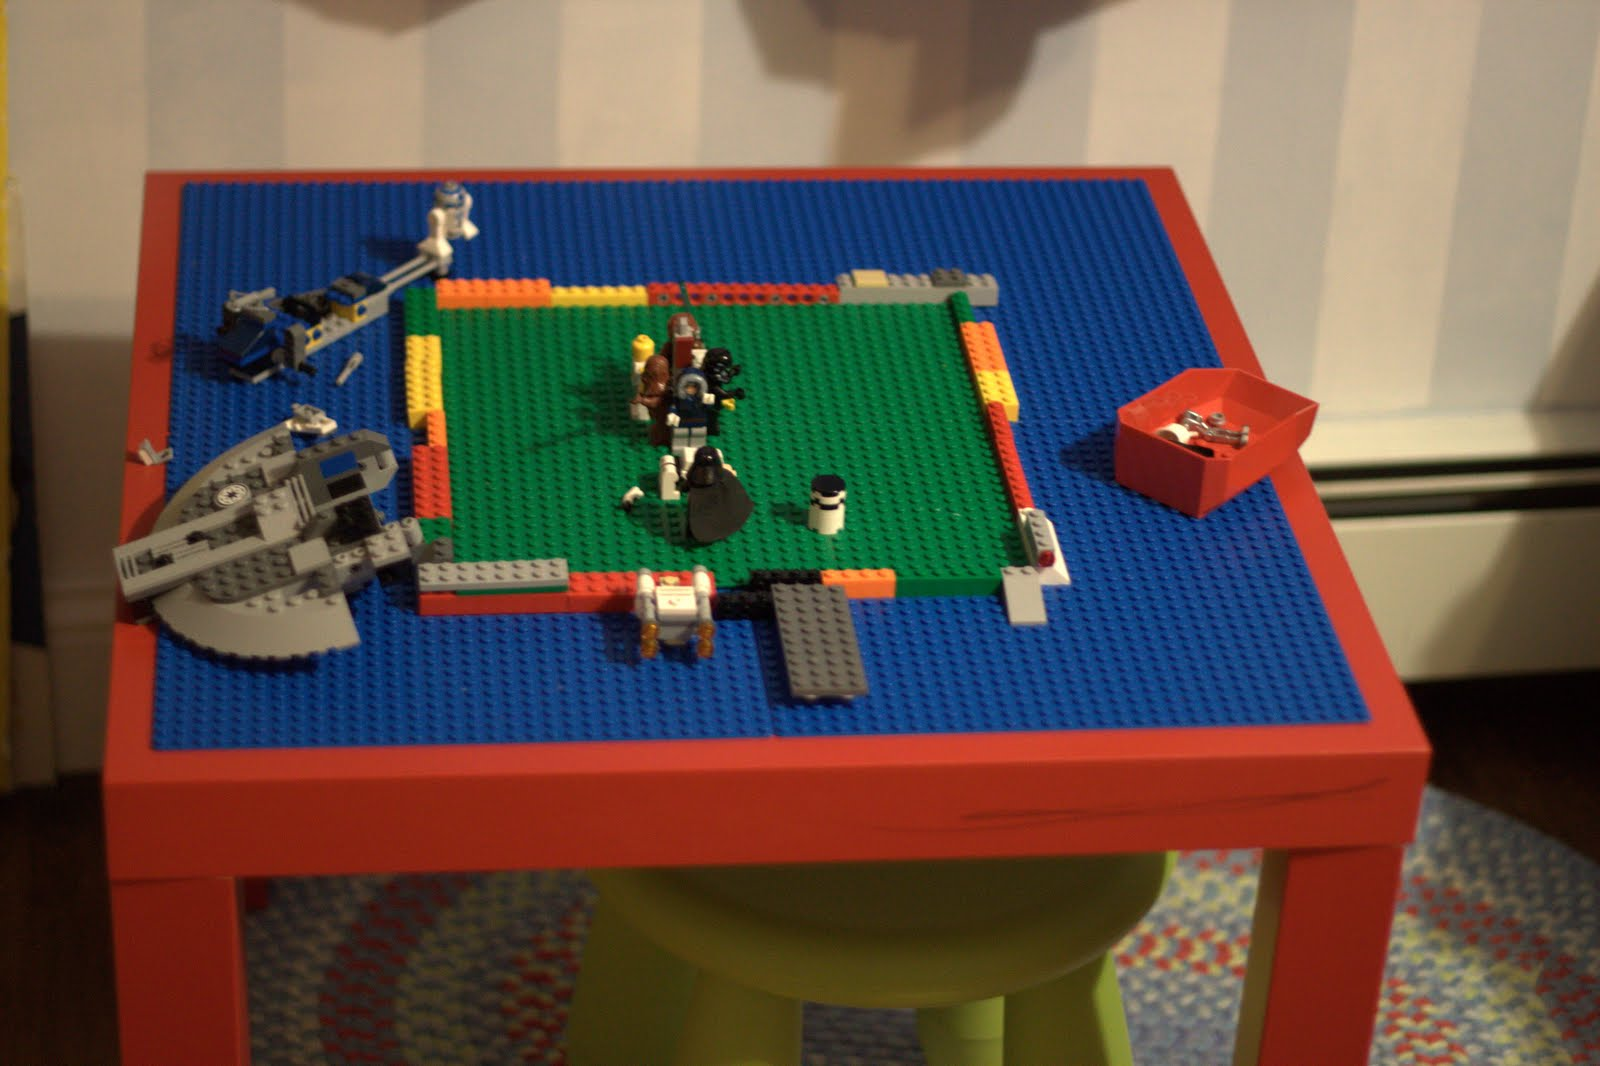 A Better Dream Lego Table Diy